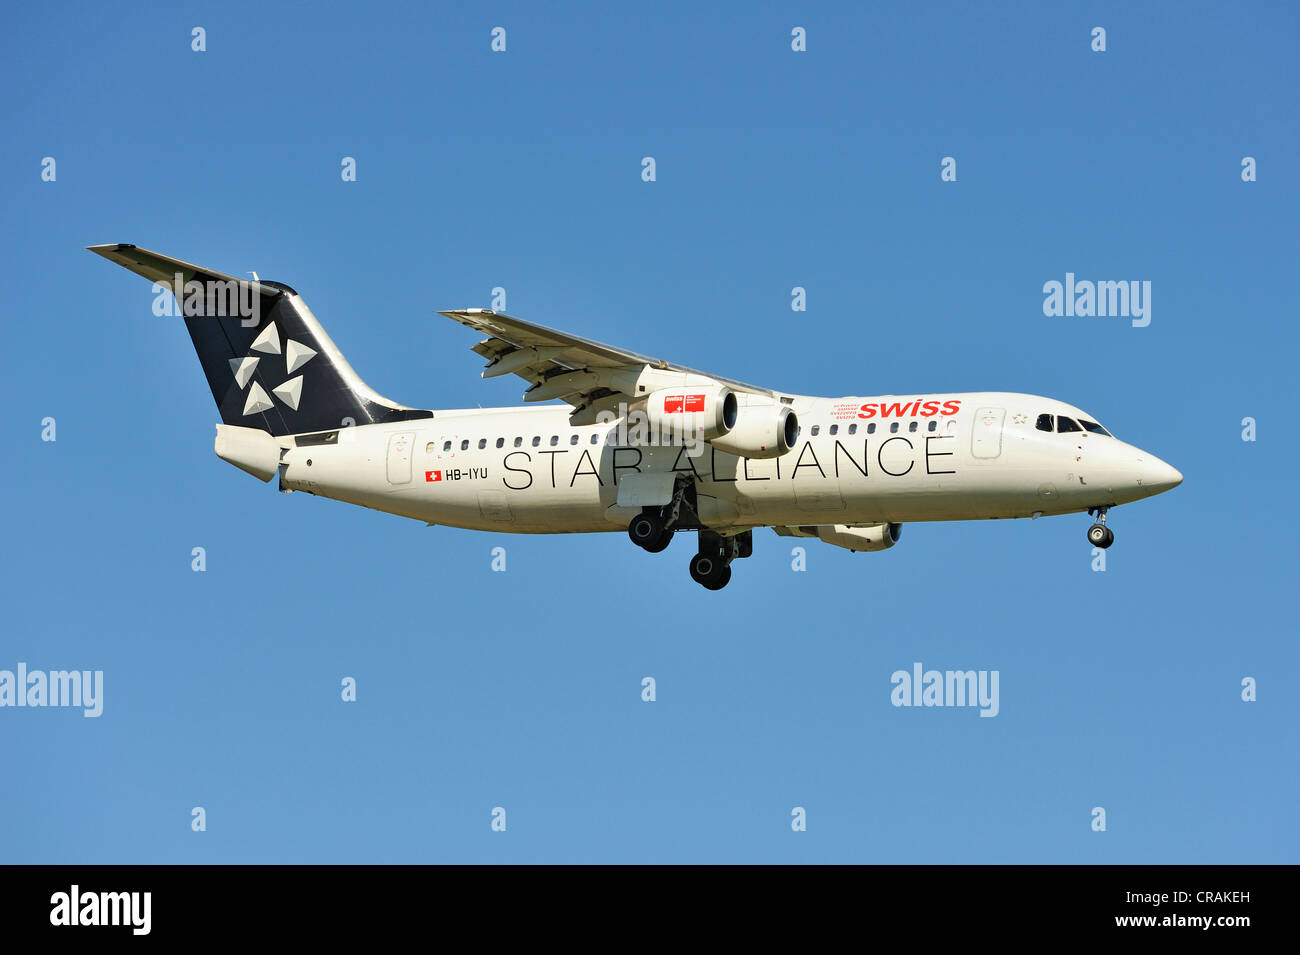 Star Alliance BAE Systems Avro 146-RJ100 during the landing approach to Zurich Airport, Zurich, Switzerland, Europe - Stock Image